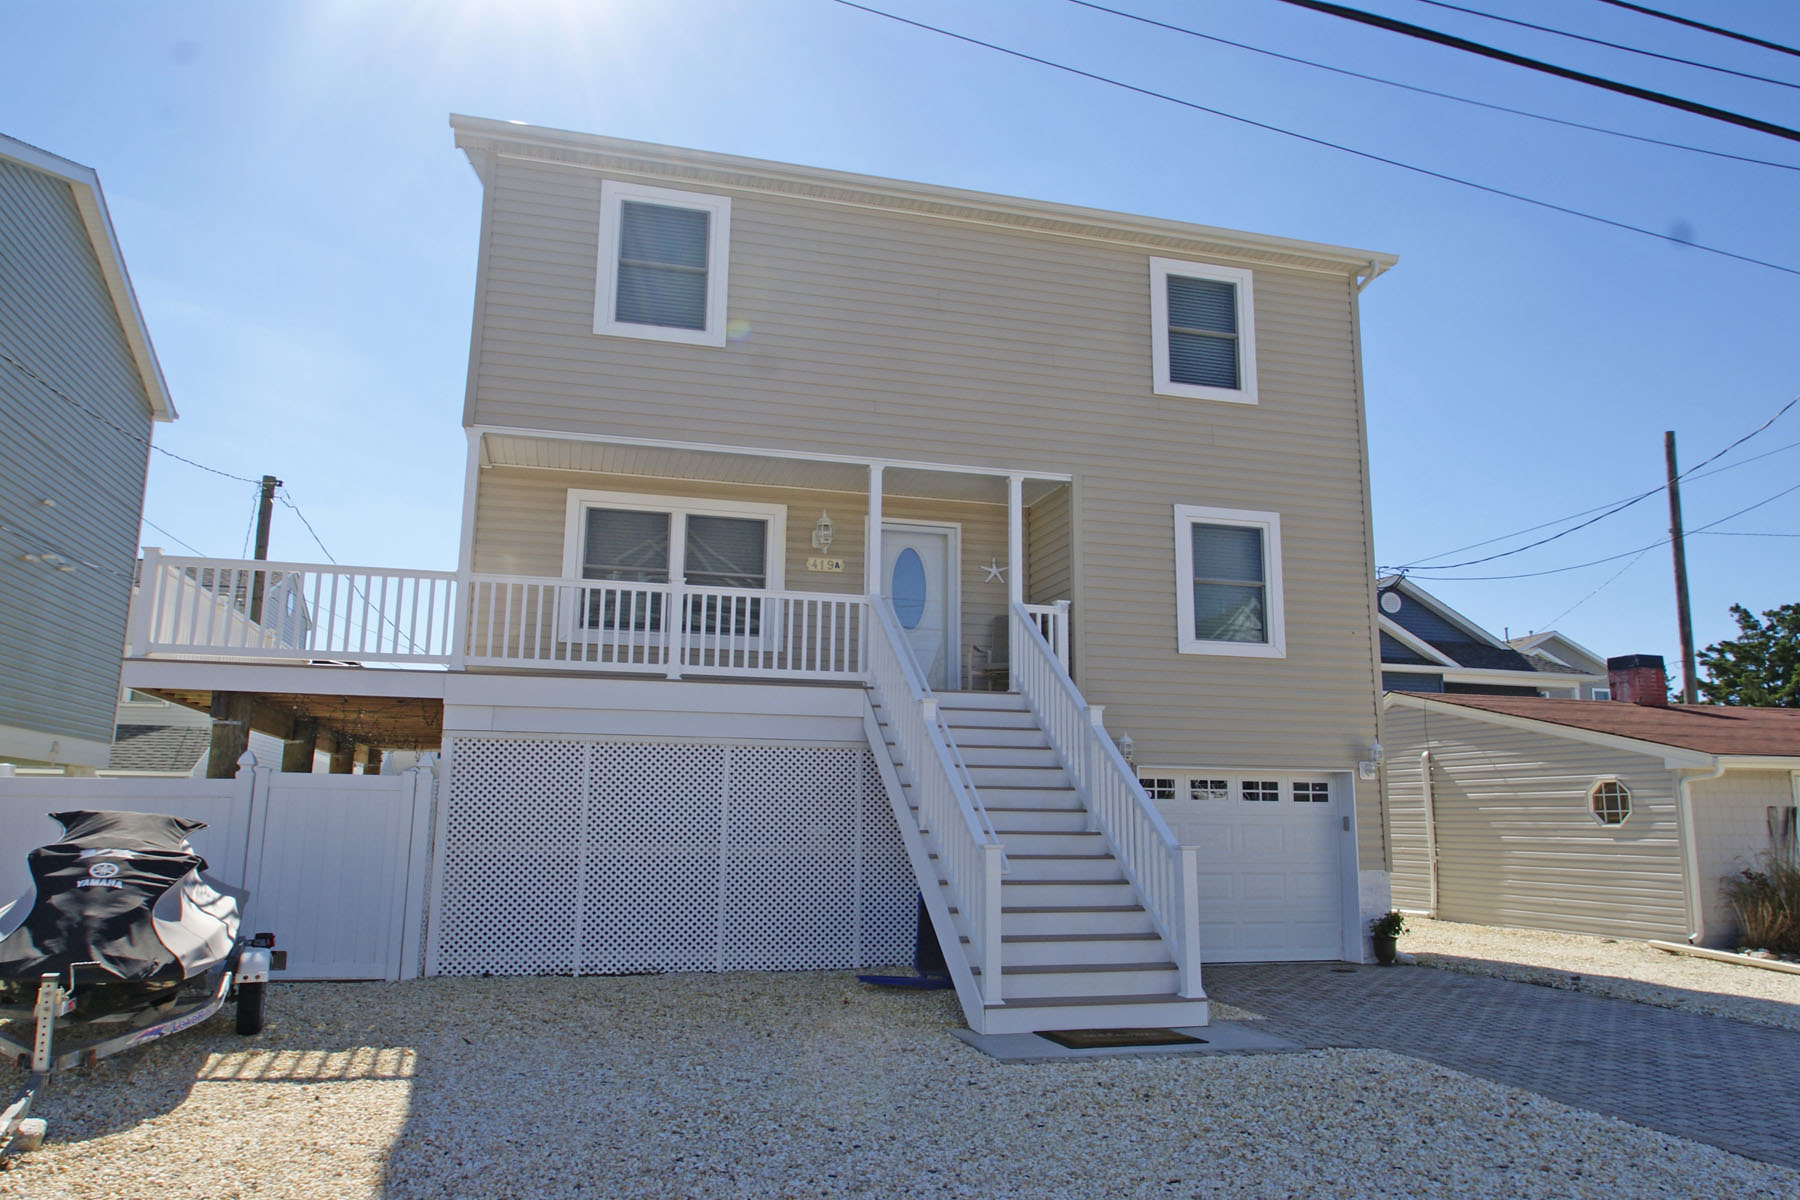 Single Family Homes for Sale at Newly Constructed FEMA Compliant Bayside Home 419 Coolidge Avenue Ortley Beach, New Jersey 08751 United States